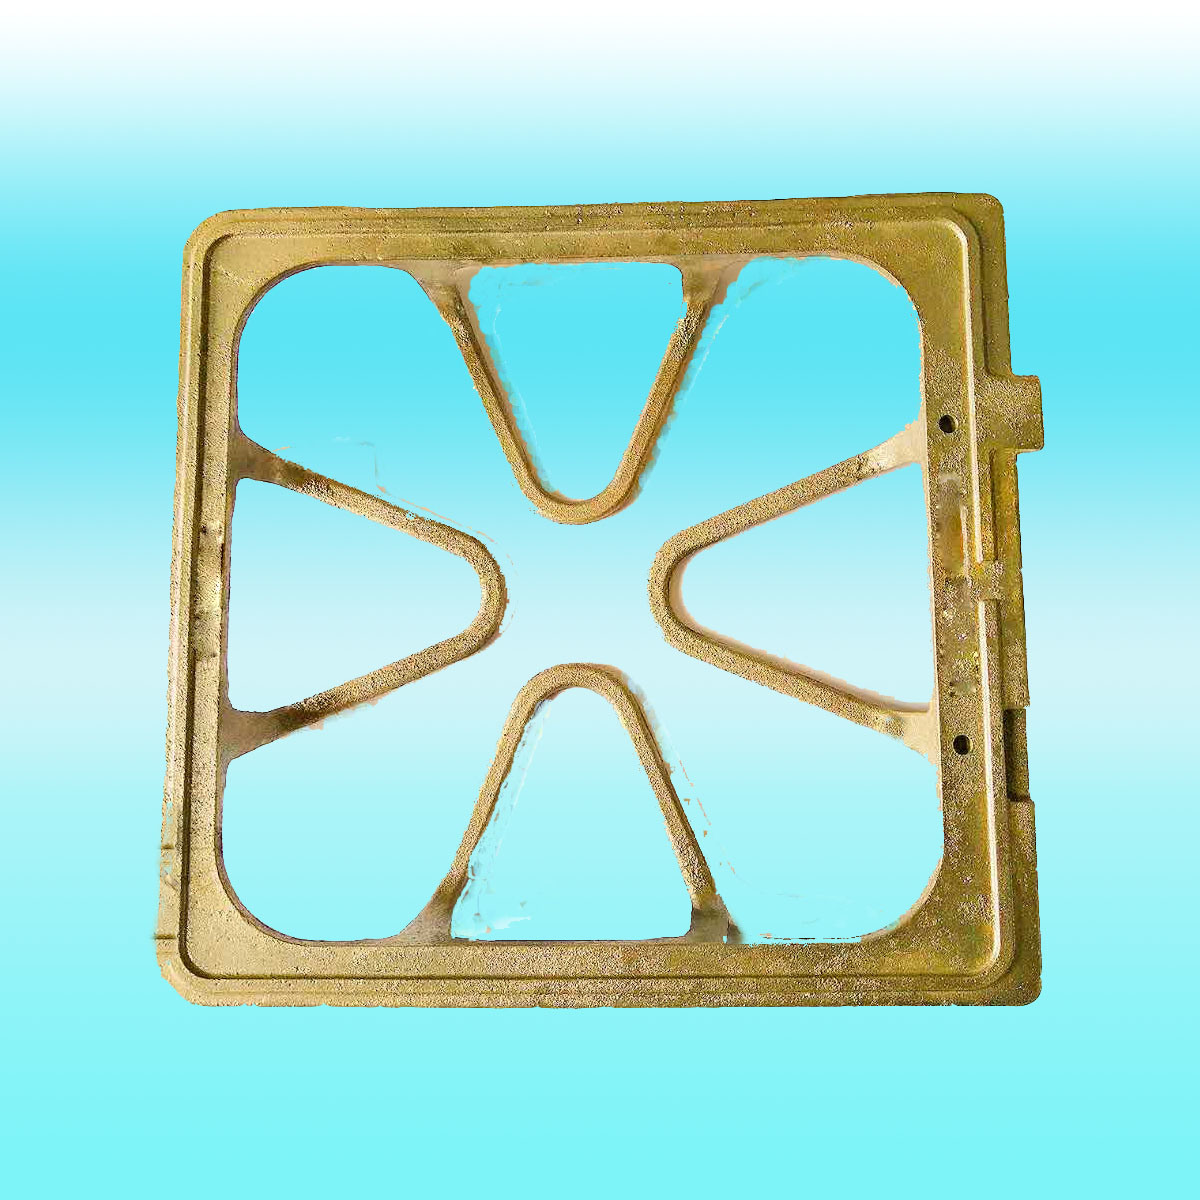 Casting Iron Grate Gas Stove